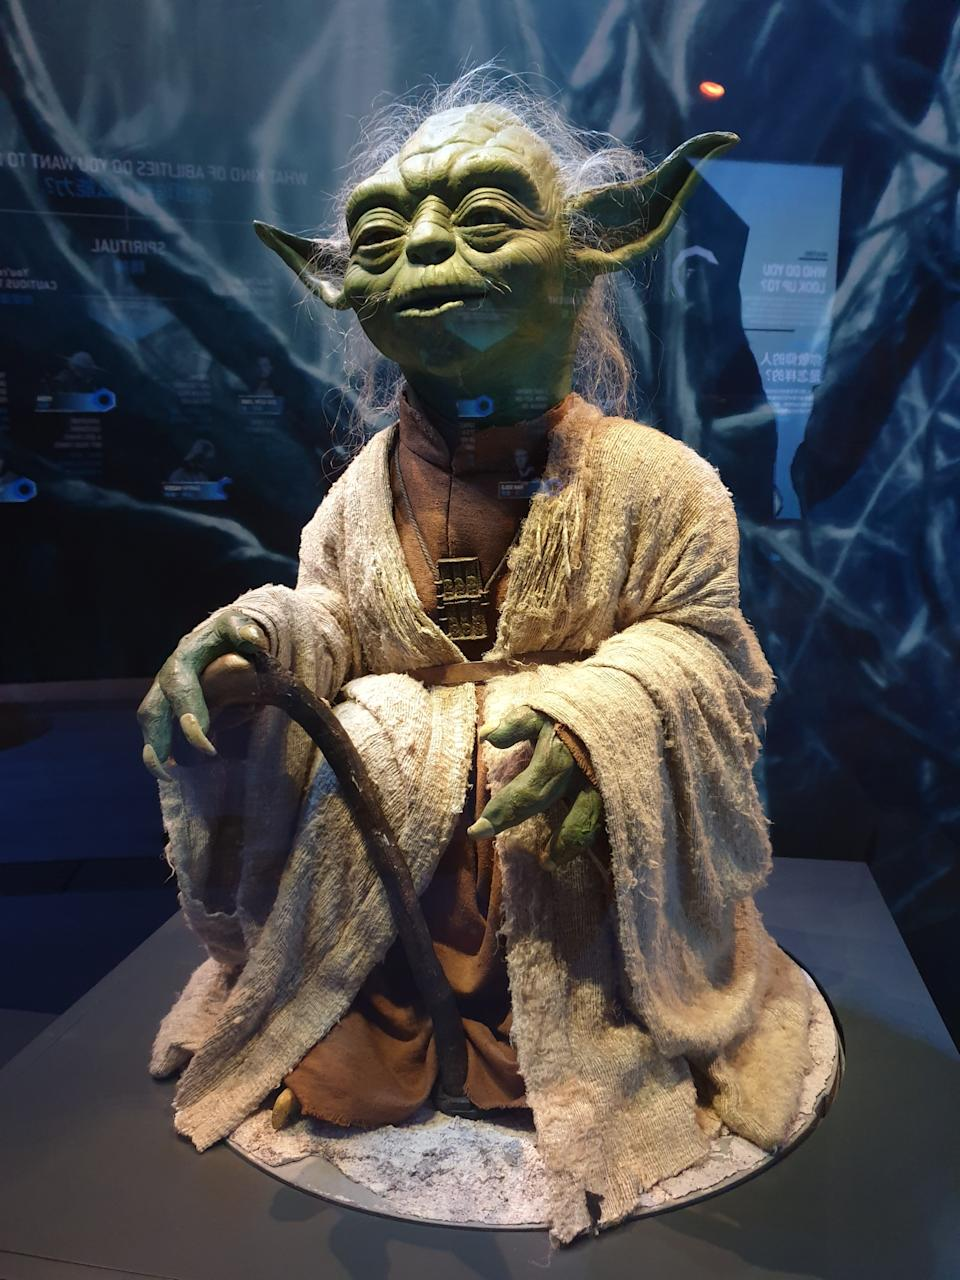 Prop of Yoda made for Star Wars: The Phantom Menace at  the Star Wars Identities exhibition in Singapore at the Artscience Museum. (Photo: Teng Yong Ping)